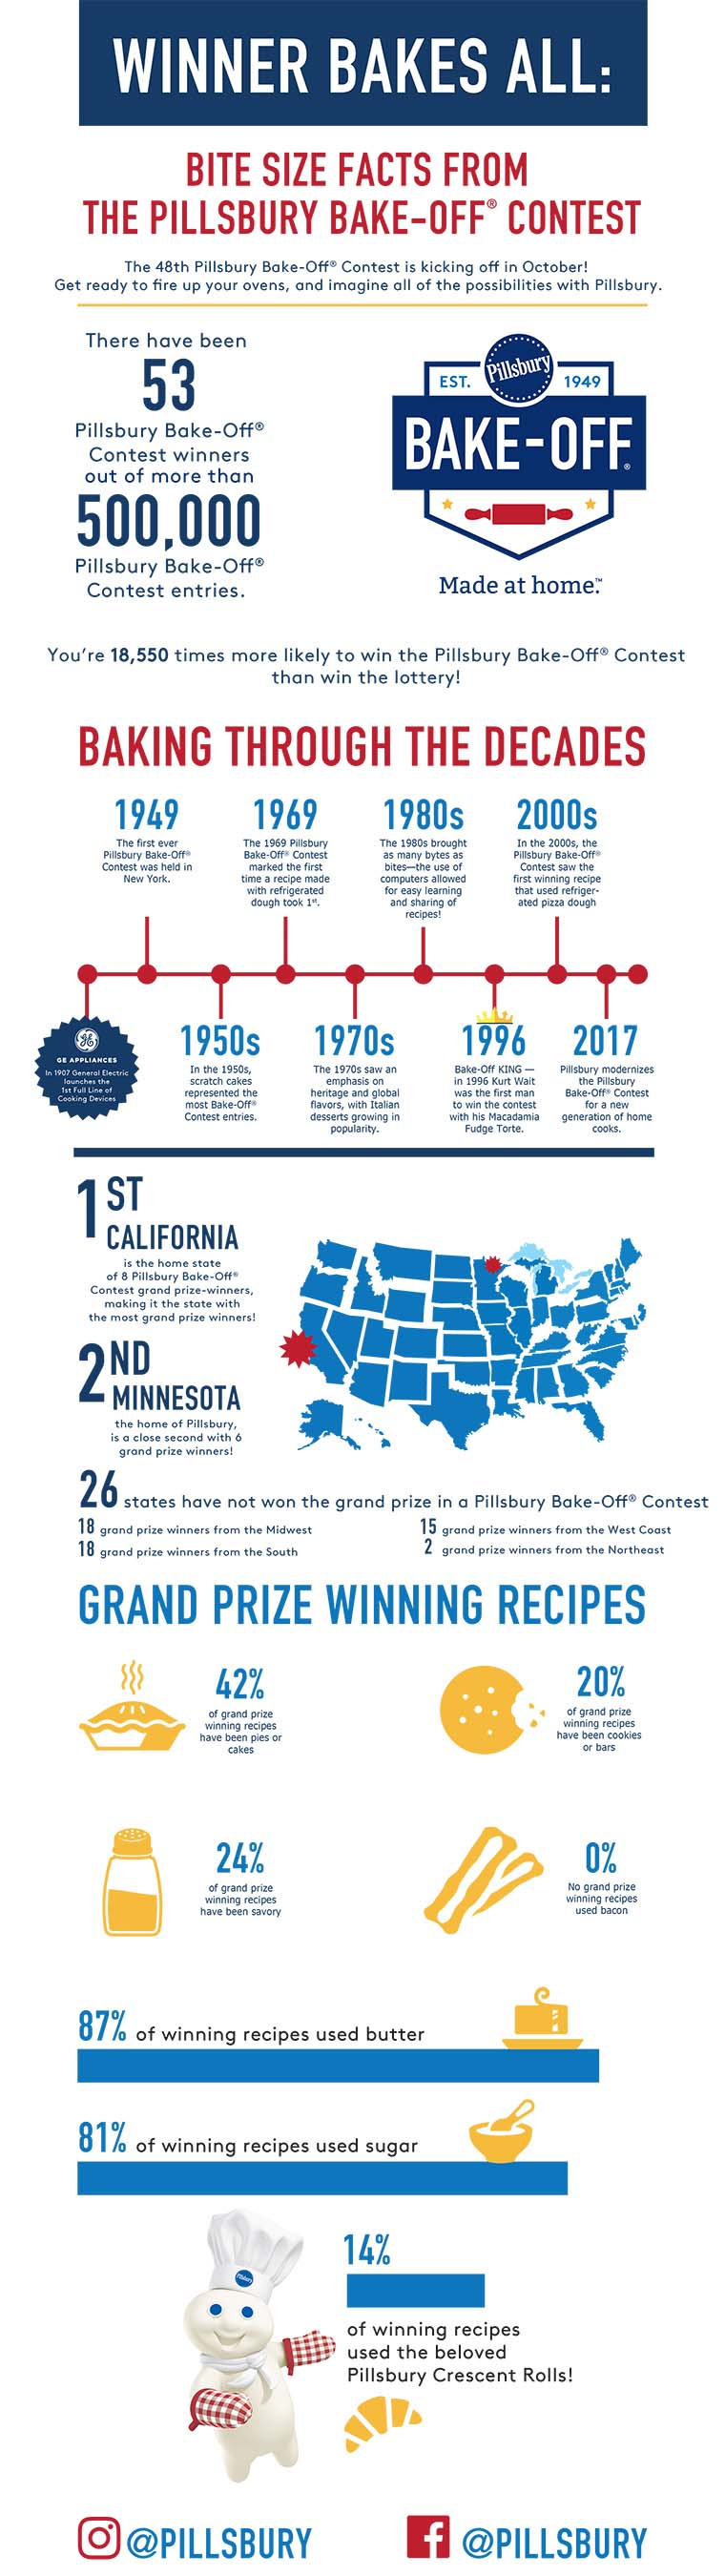 Pillsbury® Partners With Food Network And Ree Drummond, The Pioneer Woman, To Launch 48th Pillsbury Bake-Off® Contest